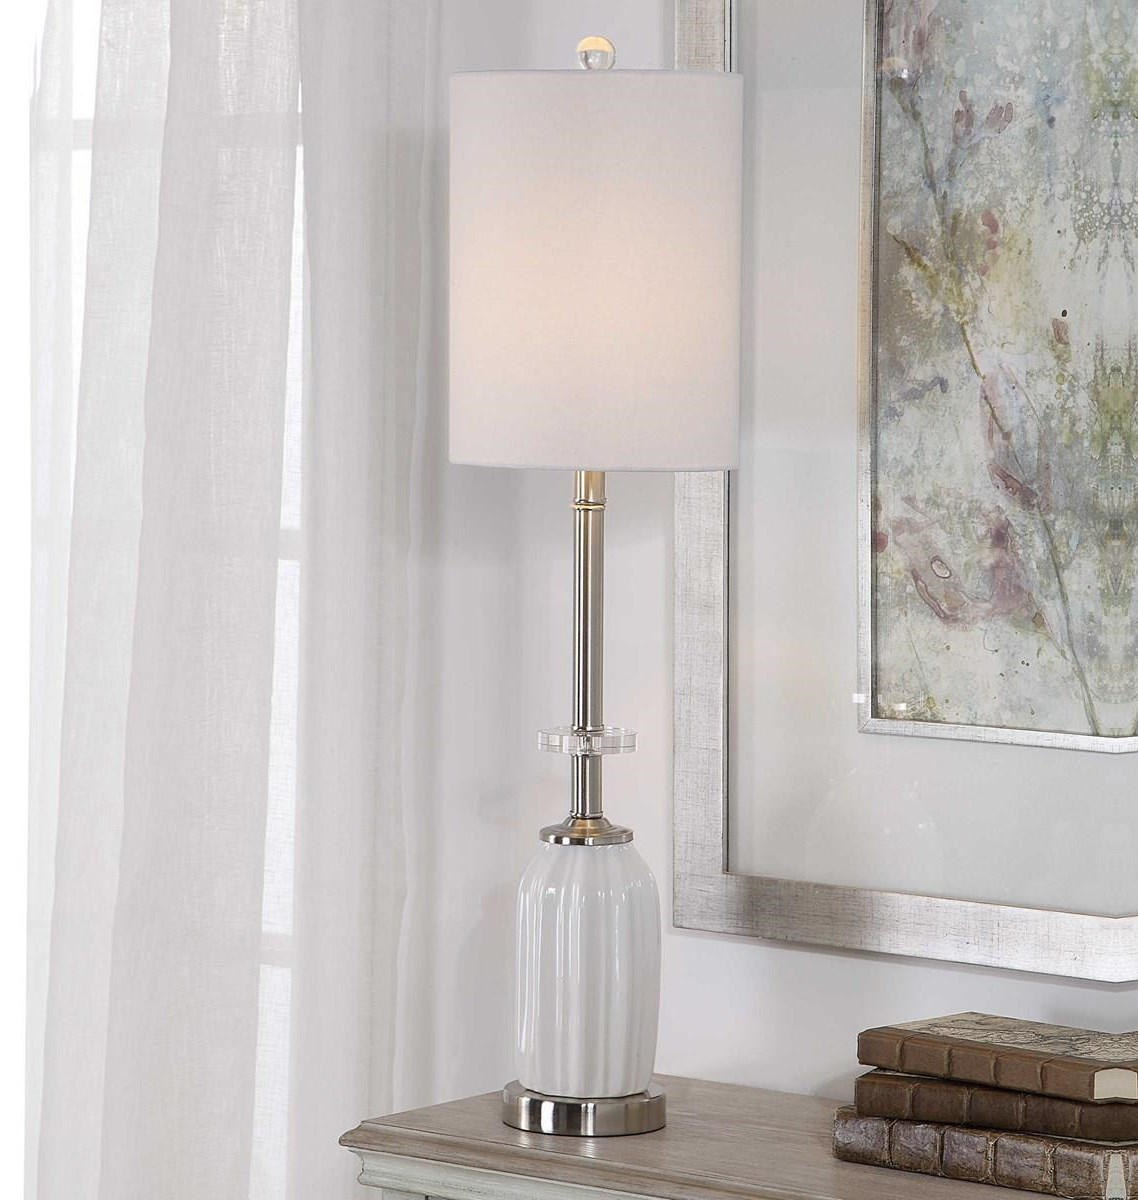 Table Lamps XIMENA TABLE LAMP by Unique at Walker's Furniture